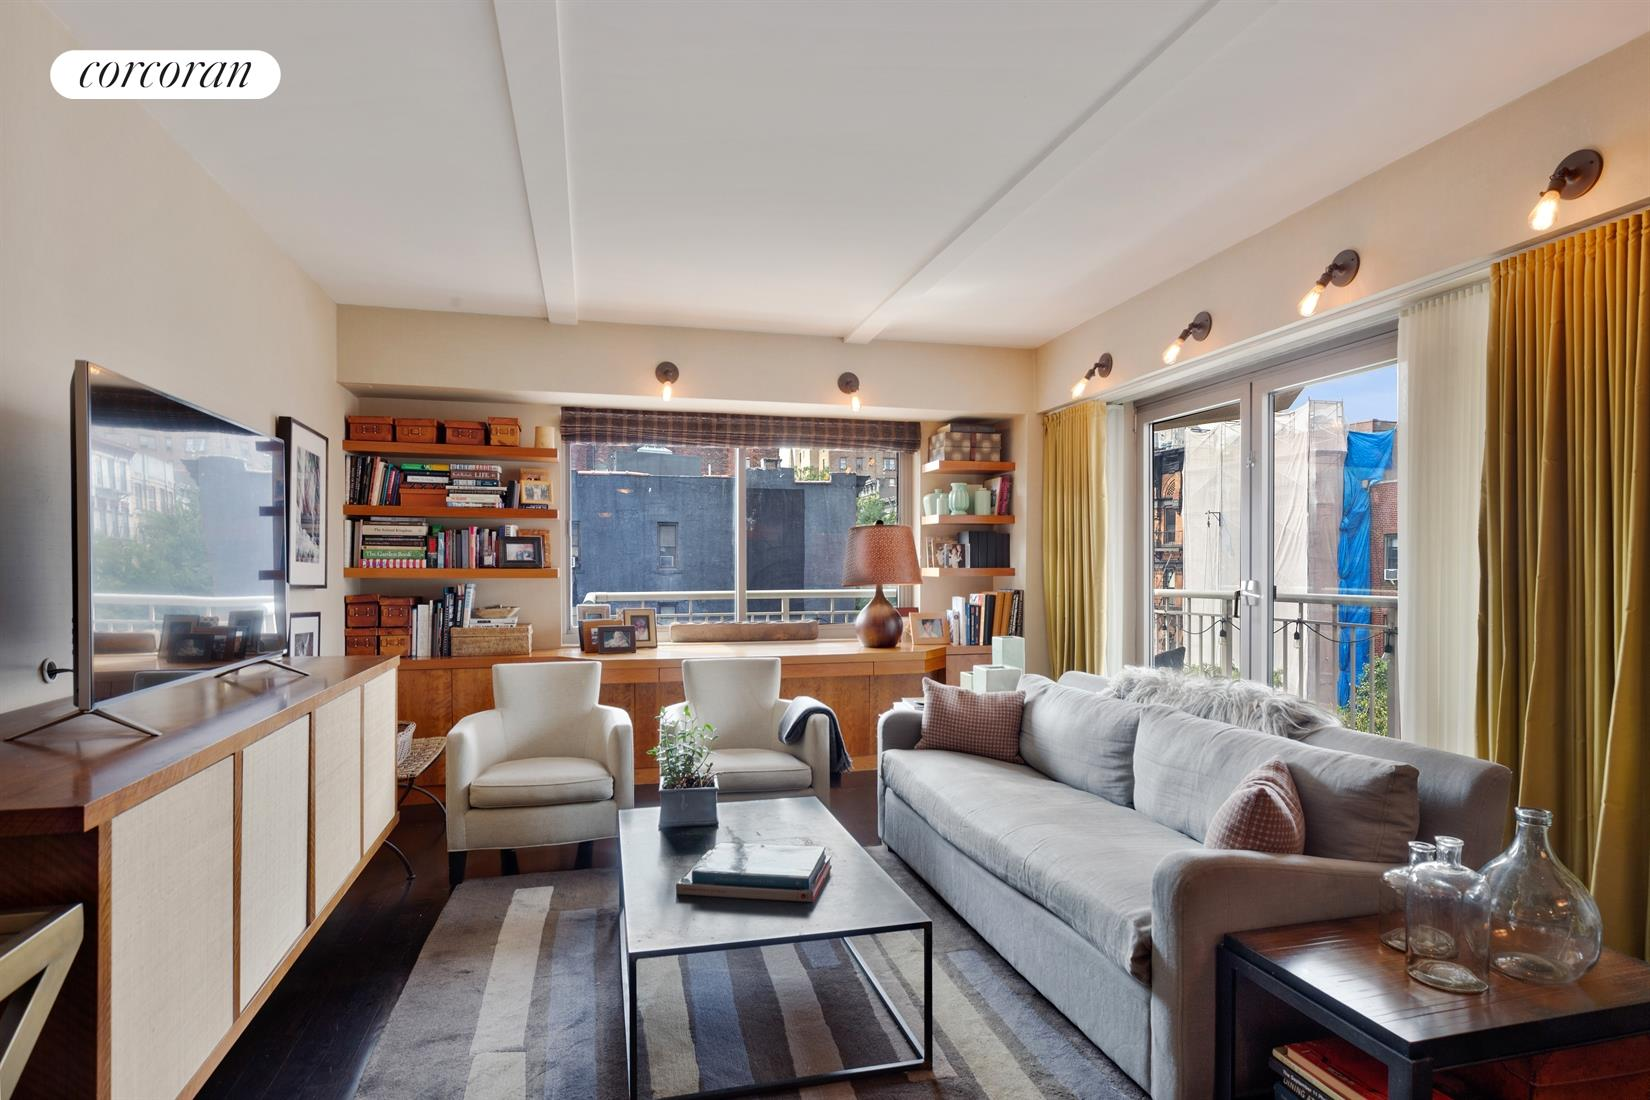 Outdoor living!  Spacious 2BR/2BTH with huge wrap terrace in the sought after New Theater Condominium with full time Doorman! Located in the heart of the East Village on a quiet tree-lined block, this home has brilliant light and open views from all rooms.  The sprawling layout includes a large entry foyer with built-in storage bench, Washer/Dryer, a state of the art designed open kitchen with honed black granite counters, a custom built-in banquette to create a dining area, and a gracious separate bedroom wing. The corner living room faces west and north with over-sized windows and access to the terrace to enjoy morning coffee or evening cocktails!  The master bedroom easily fits a king-sized bed, has a built out walk-in closet and an elegant en suite bathroom.  The apartment has been outfitted with smartly designed storage throughout.Three exposures provide light all day and is pin drop quiet.  This rarely available line feels like a country house with indoor/outdoor living coupled with a modern stylish aesthetic.  The New Theatre Condominium is pet friendly, has a full time doorman and super, a recently renovated sleek lobby and is surrounded by top restaurants, charming cafes and shops, Tompkins Sq park, and all transportation.  Make this one of a kind home yours!  Also available for rent $7,500 per month